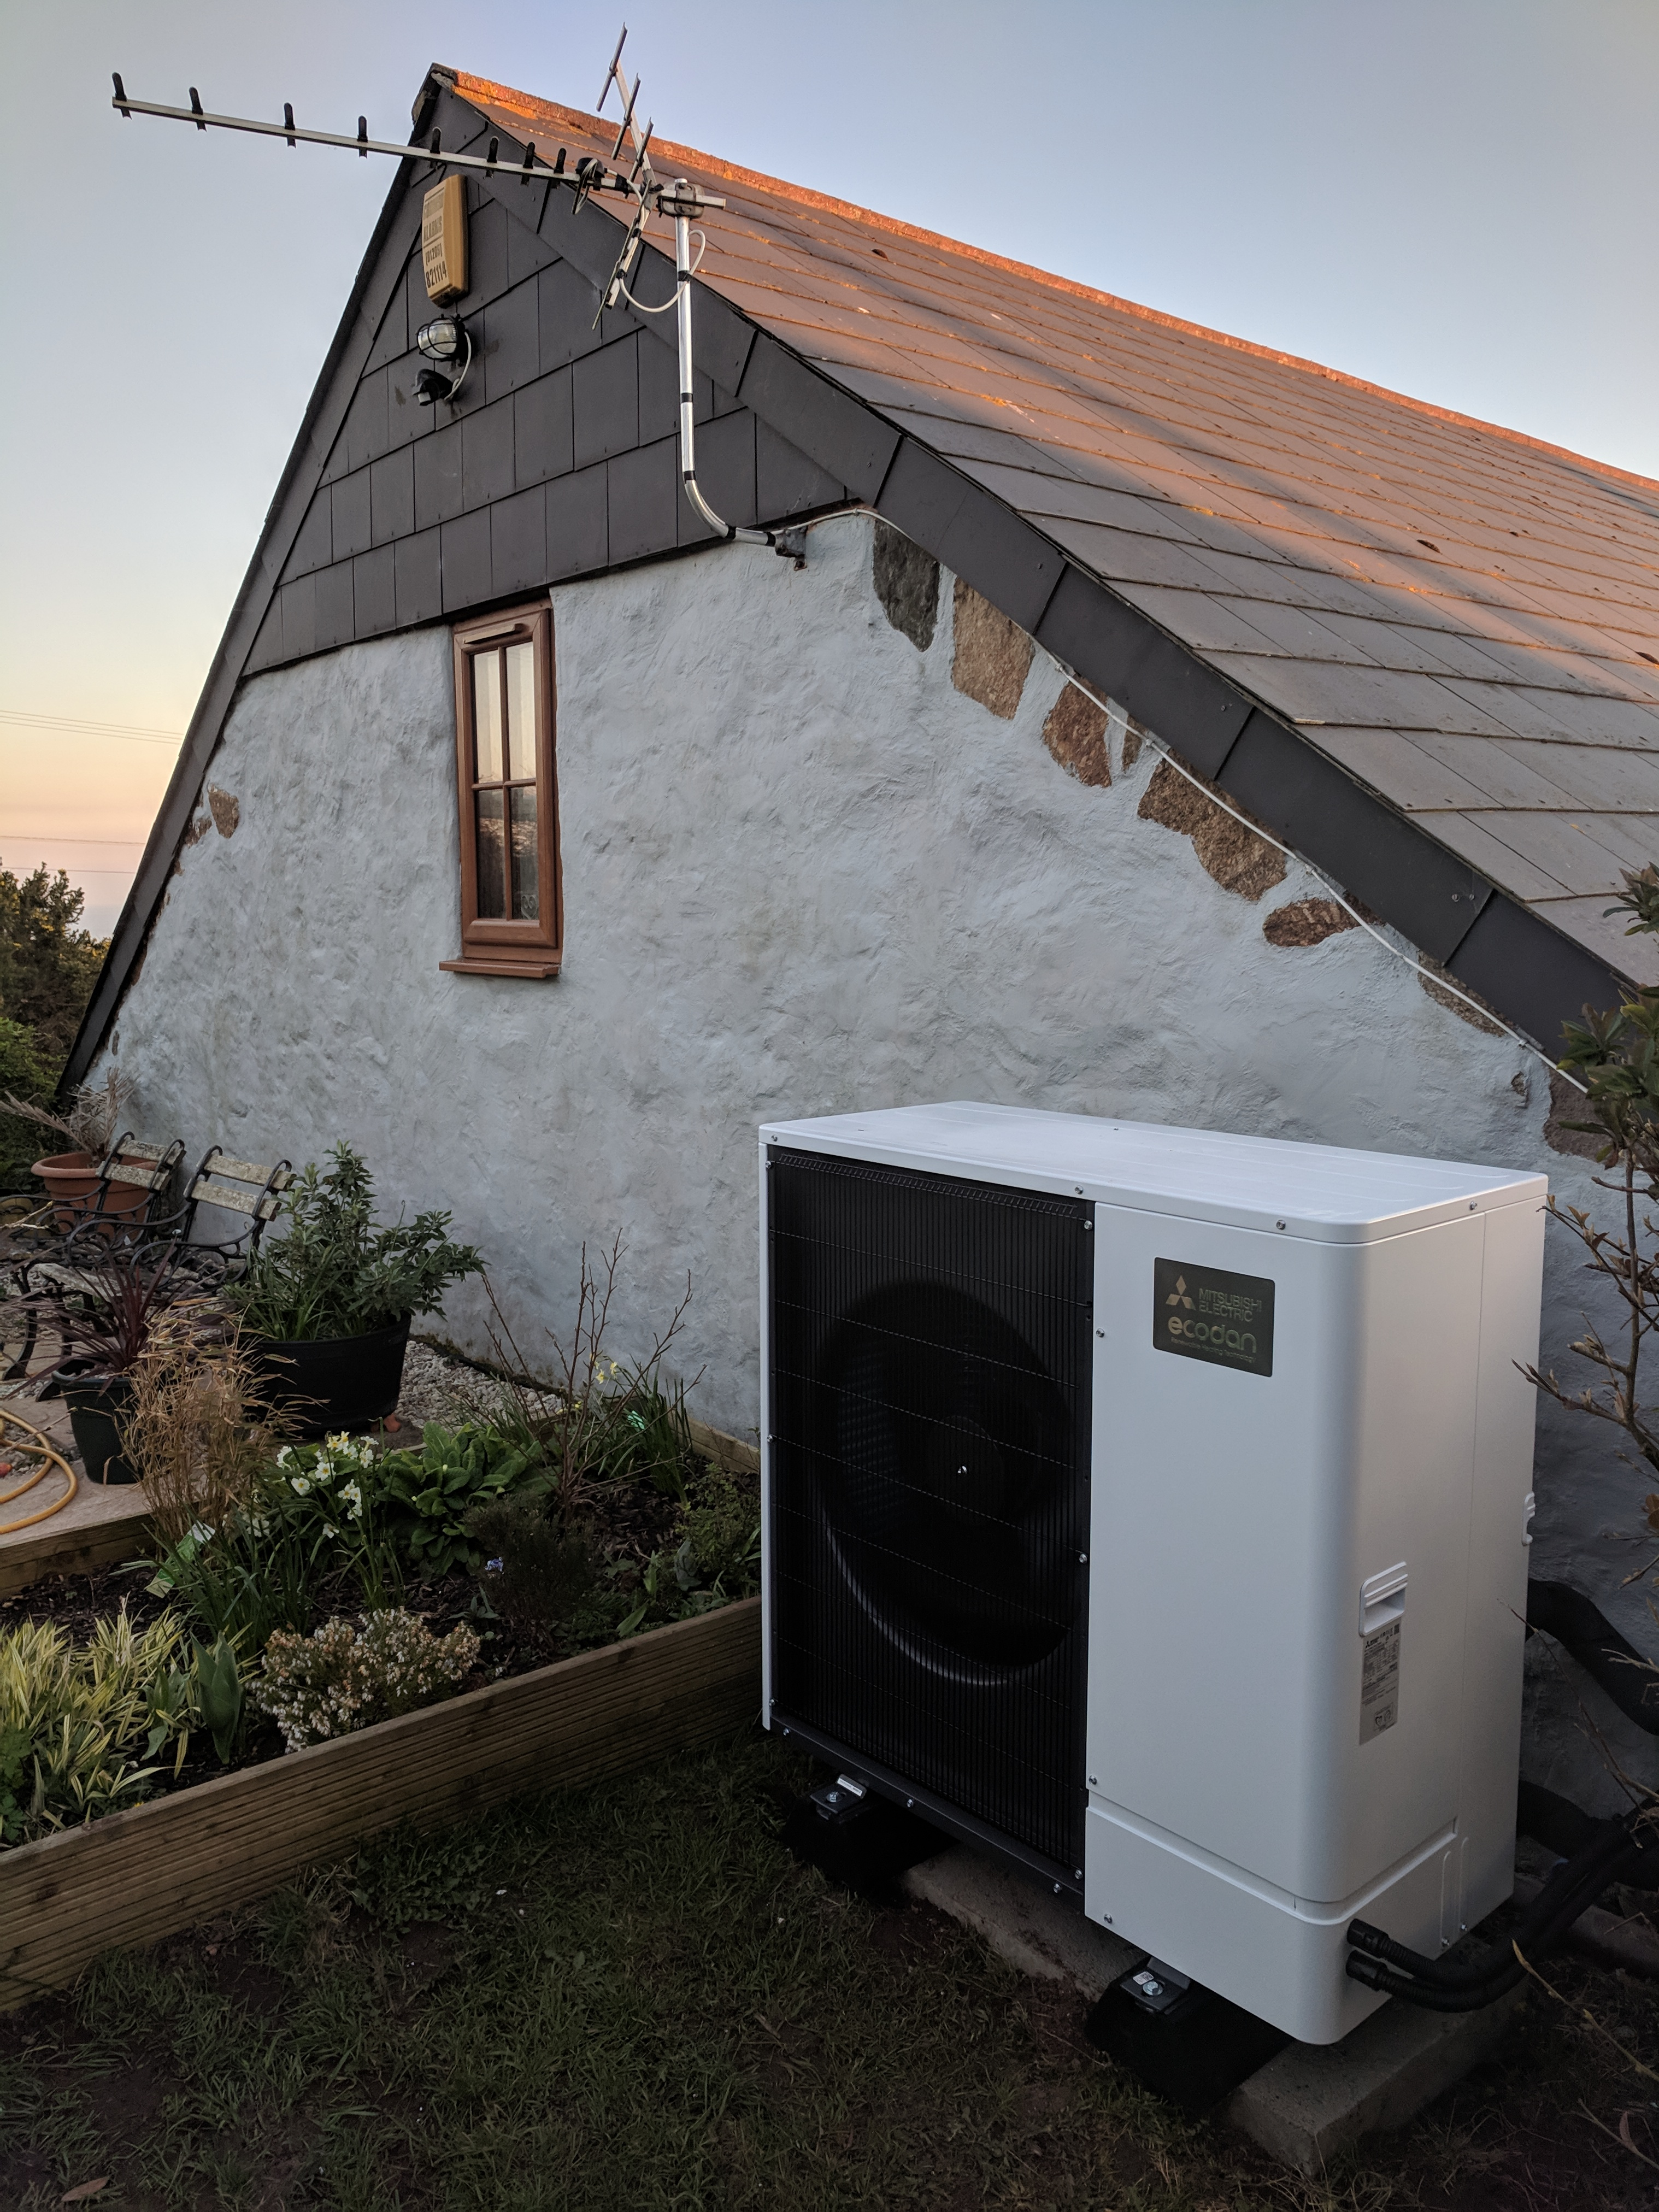 An 11.2kW Ultra Quiet Mitsubishi Ecodan air source heat pump installed by GreenGenUK.